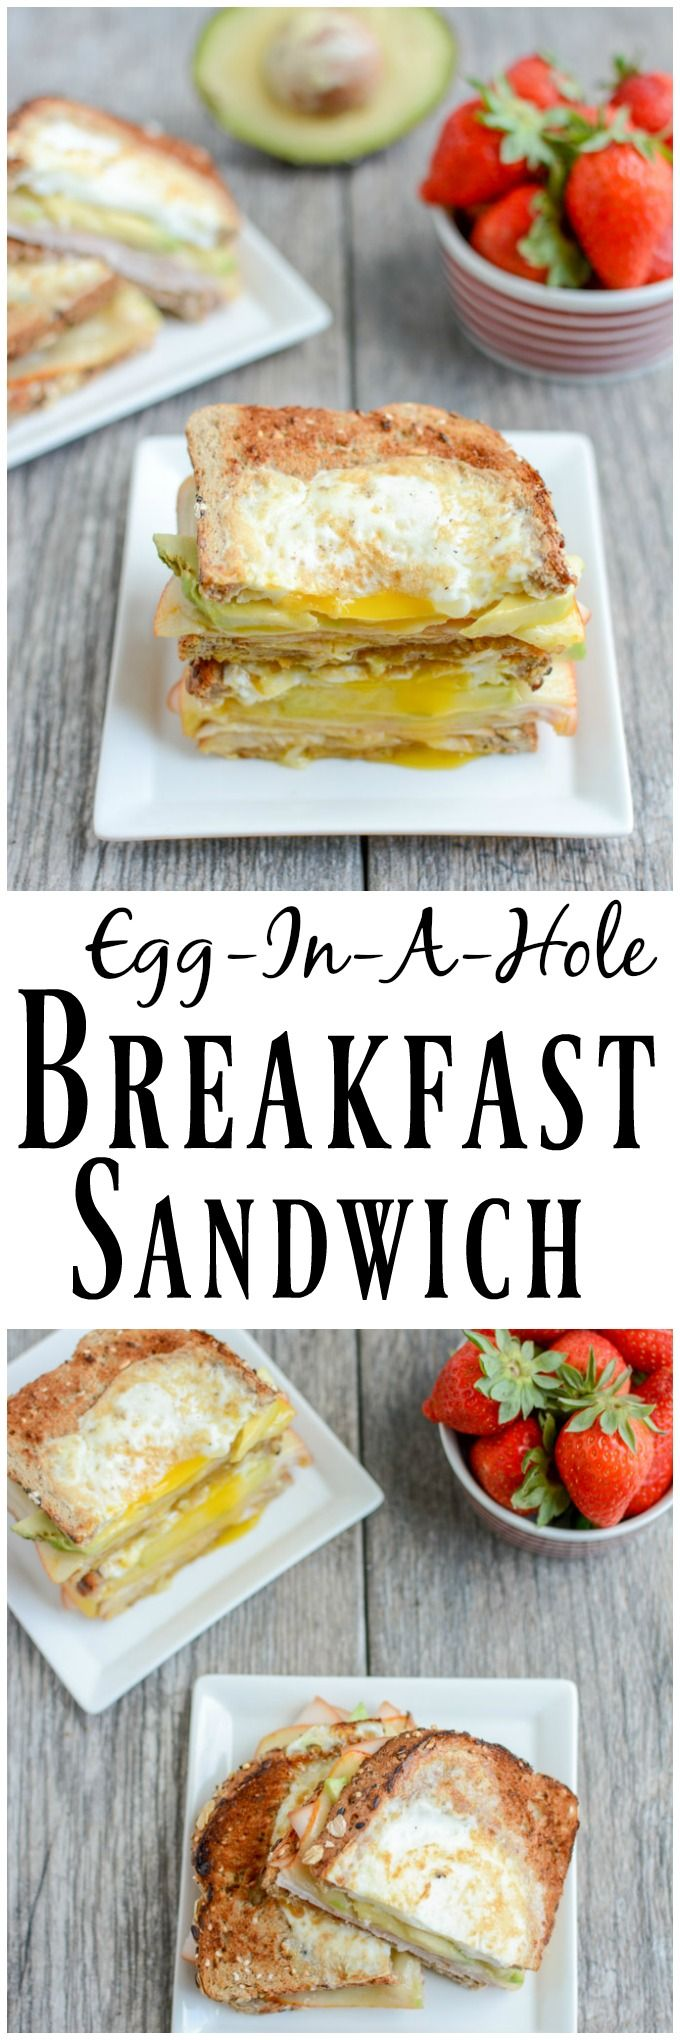 This Egg-In-A-Hole Breakfast Sandwich is a protein-packed, healthy breakfast recipe that's ready in under 5 minutes. The perfect way to start your day! (ad)